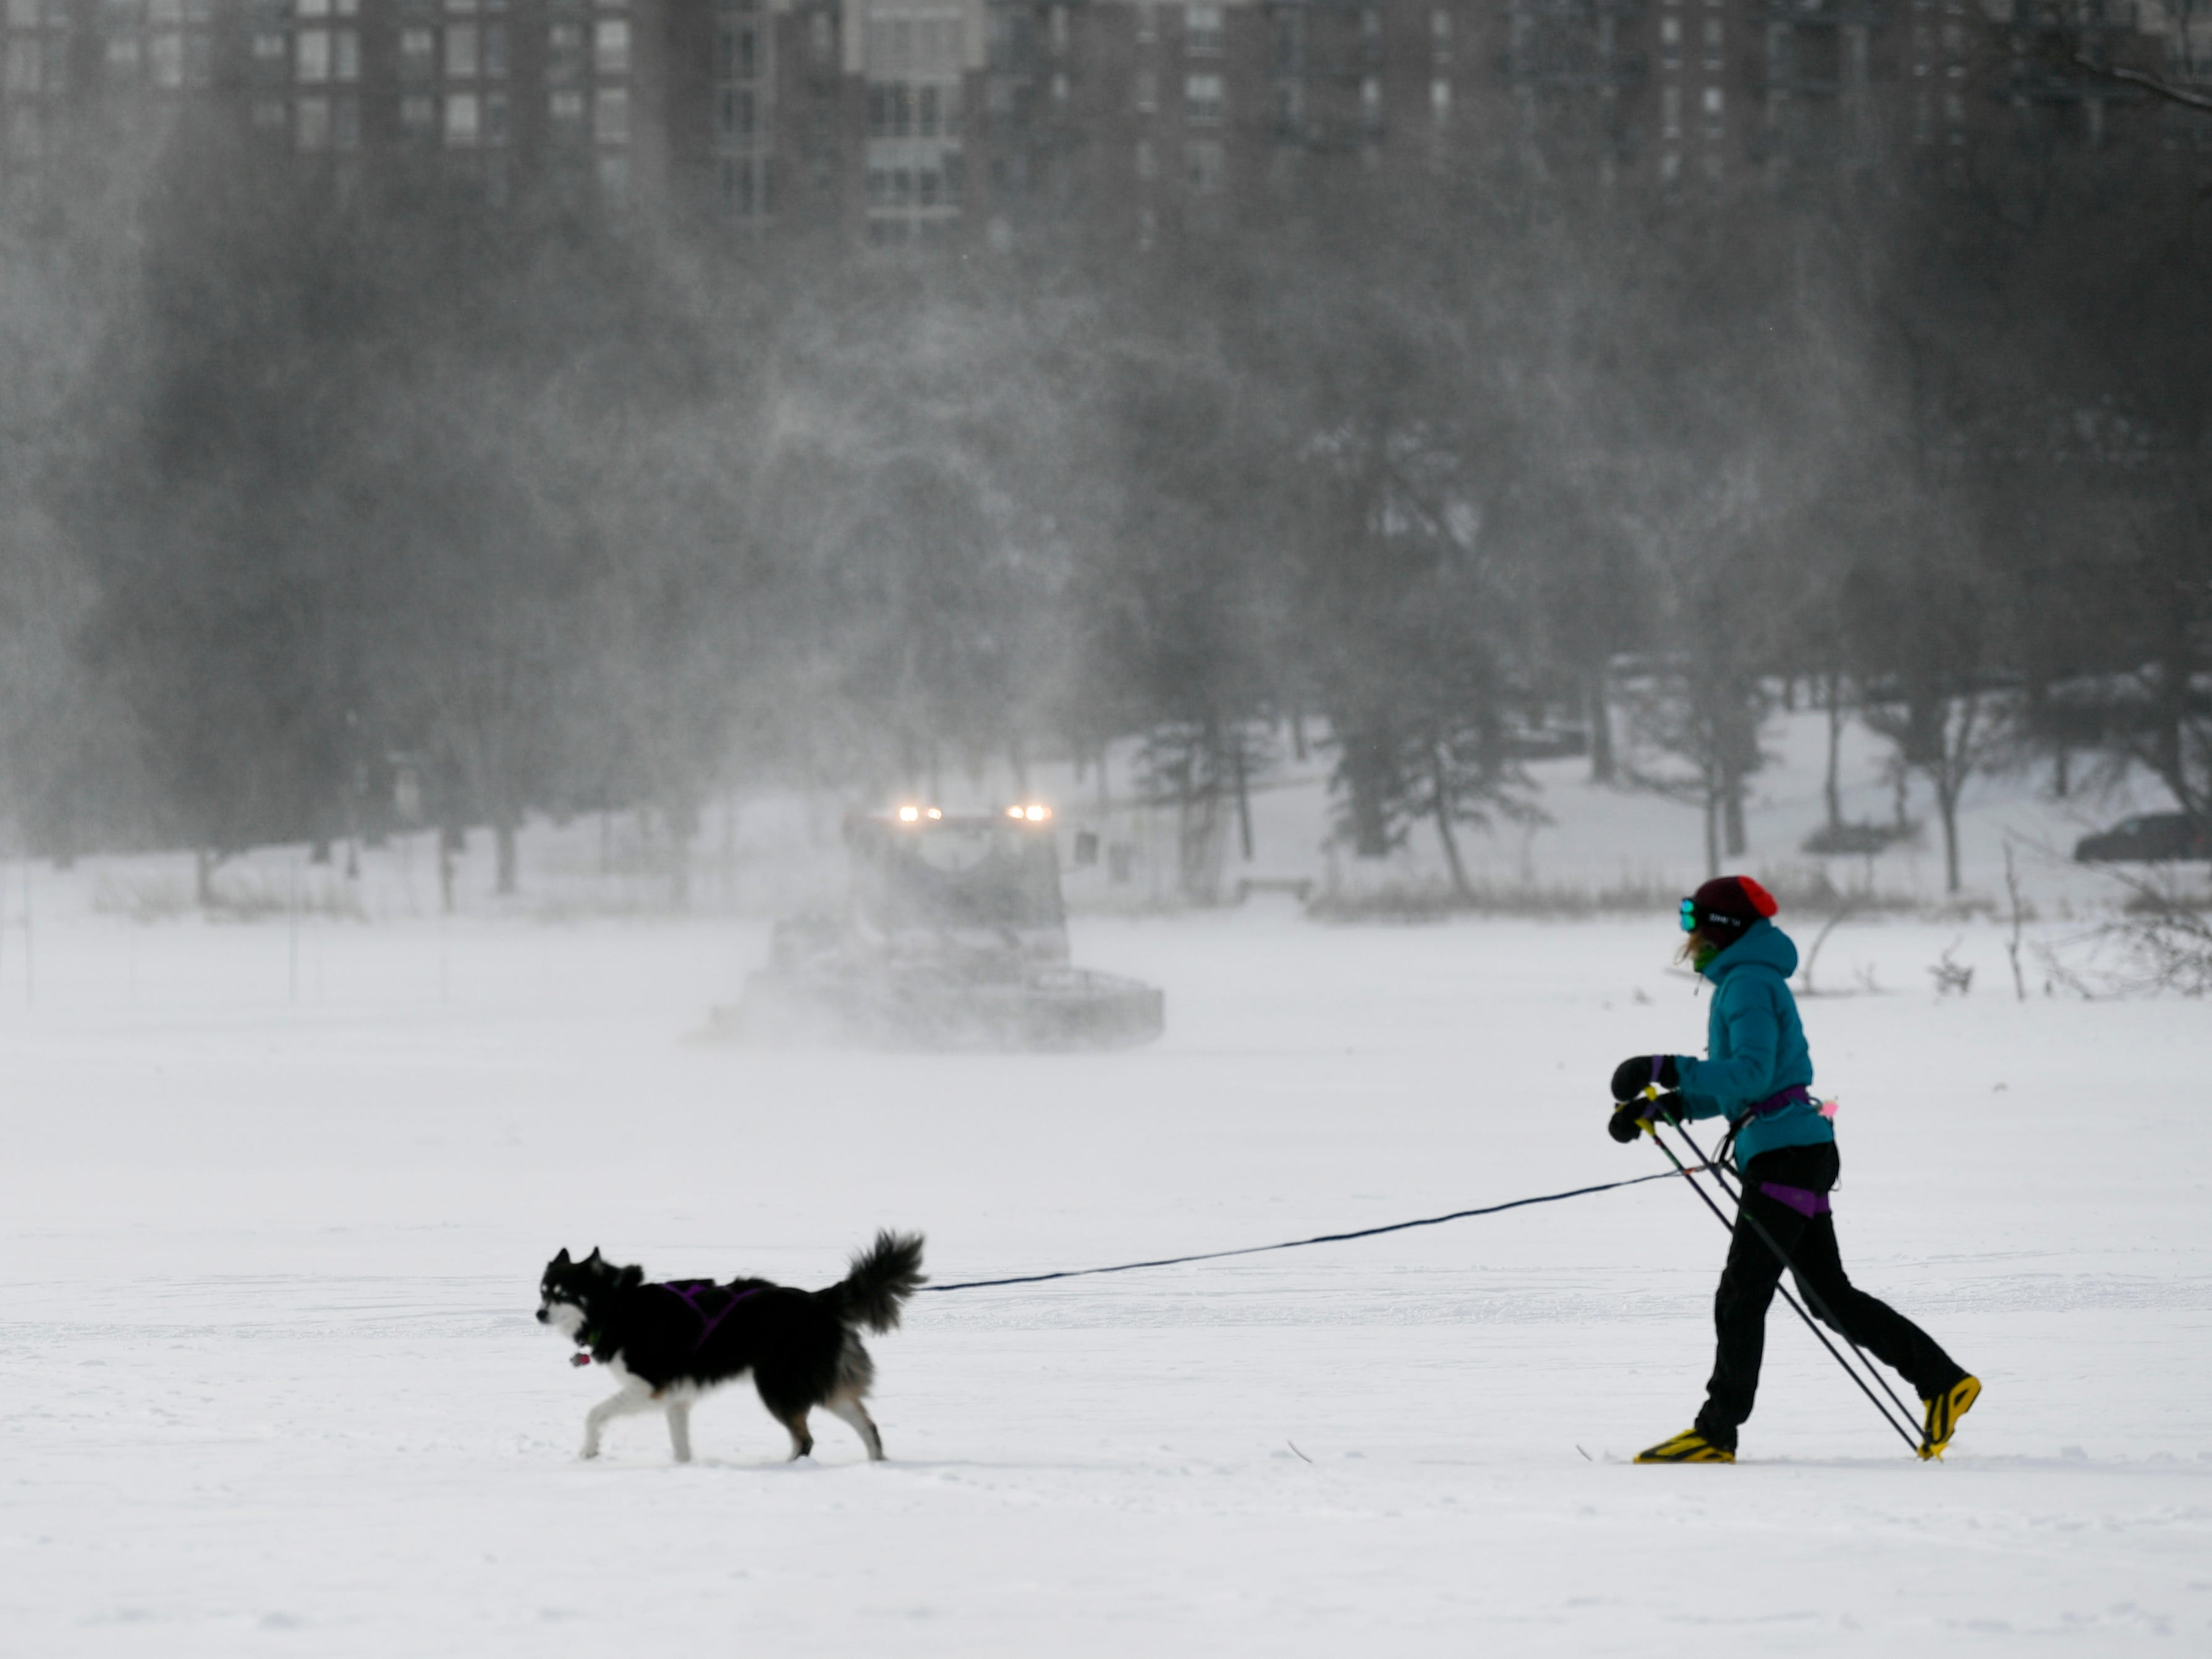 Chloe Adams skis with her dog, Roscoe, in Minneapolis on Jan. 29, 2019.